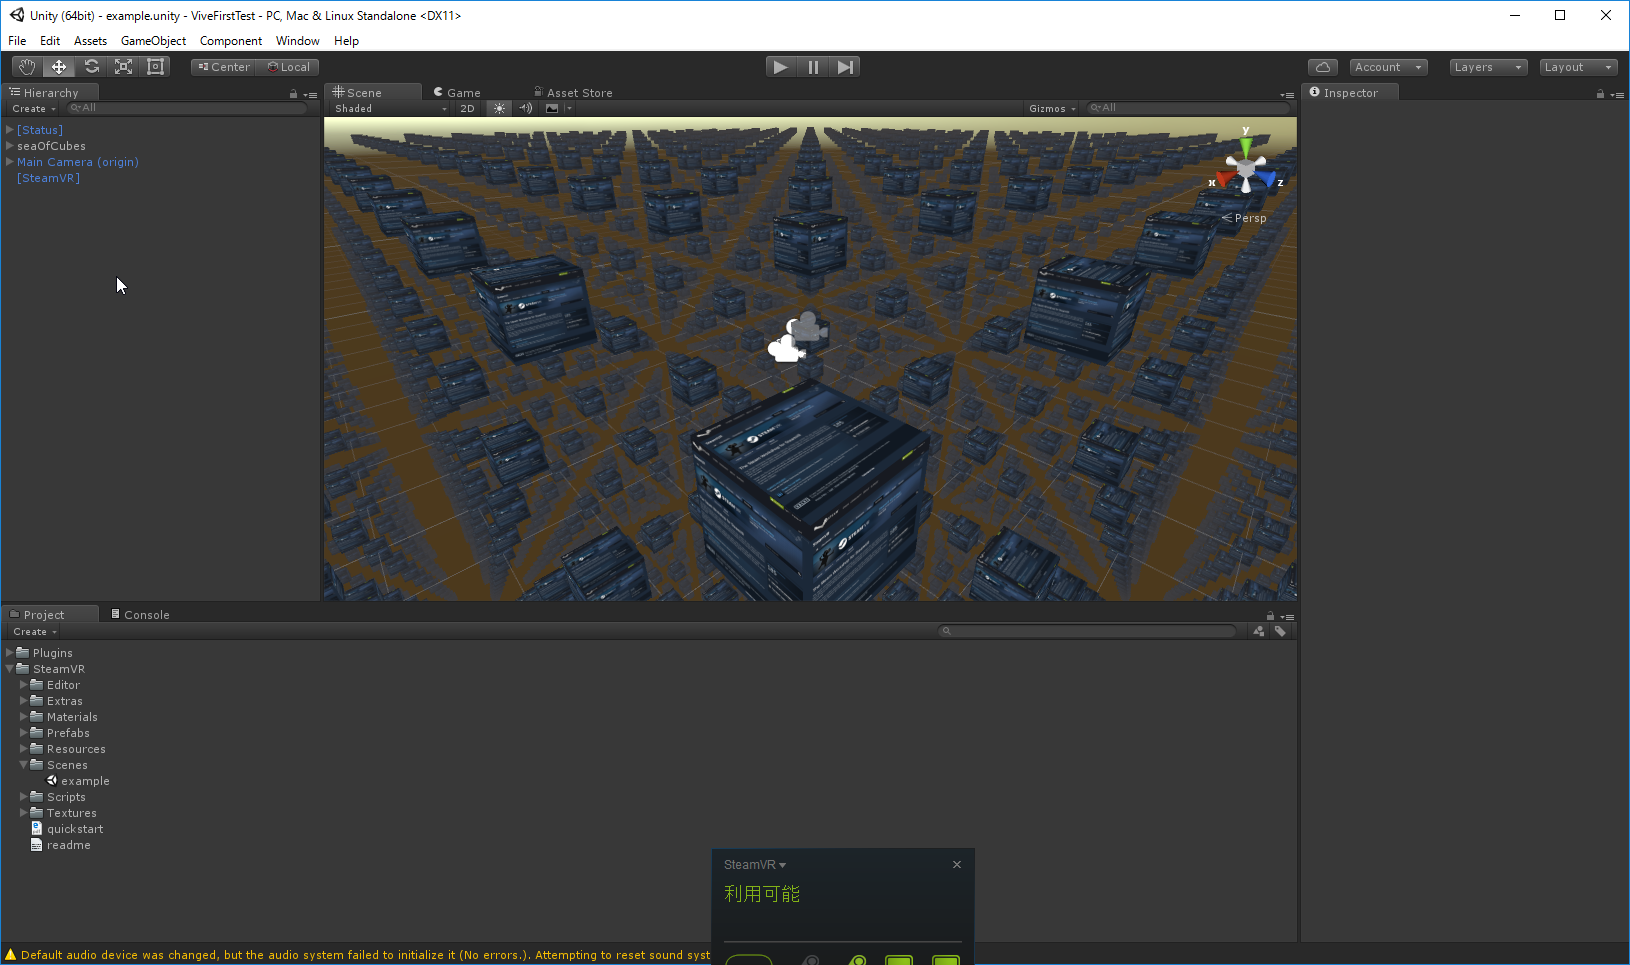 SnapCrab_Unity (64bit) - exampleunity - ViveFirstTest - PC Mac & Linux Standalone DX11_2016-7-23_23-12-38_No-00.png